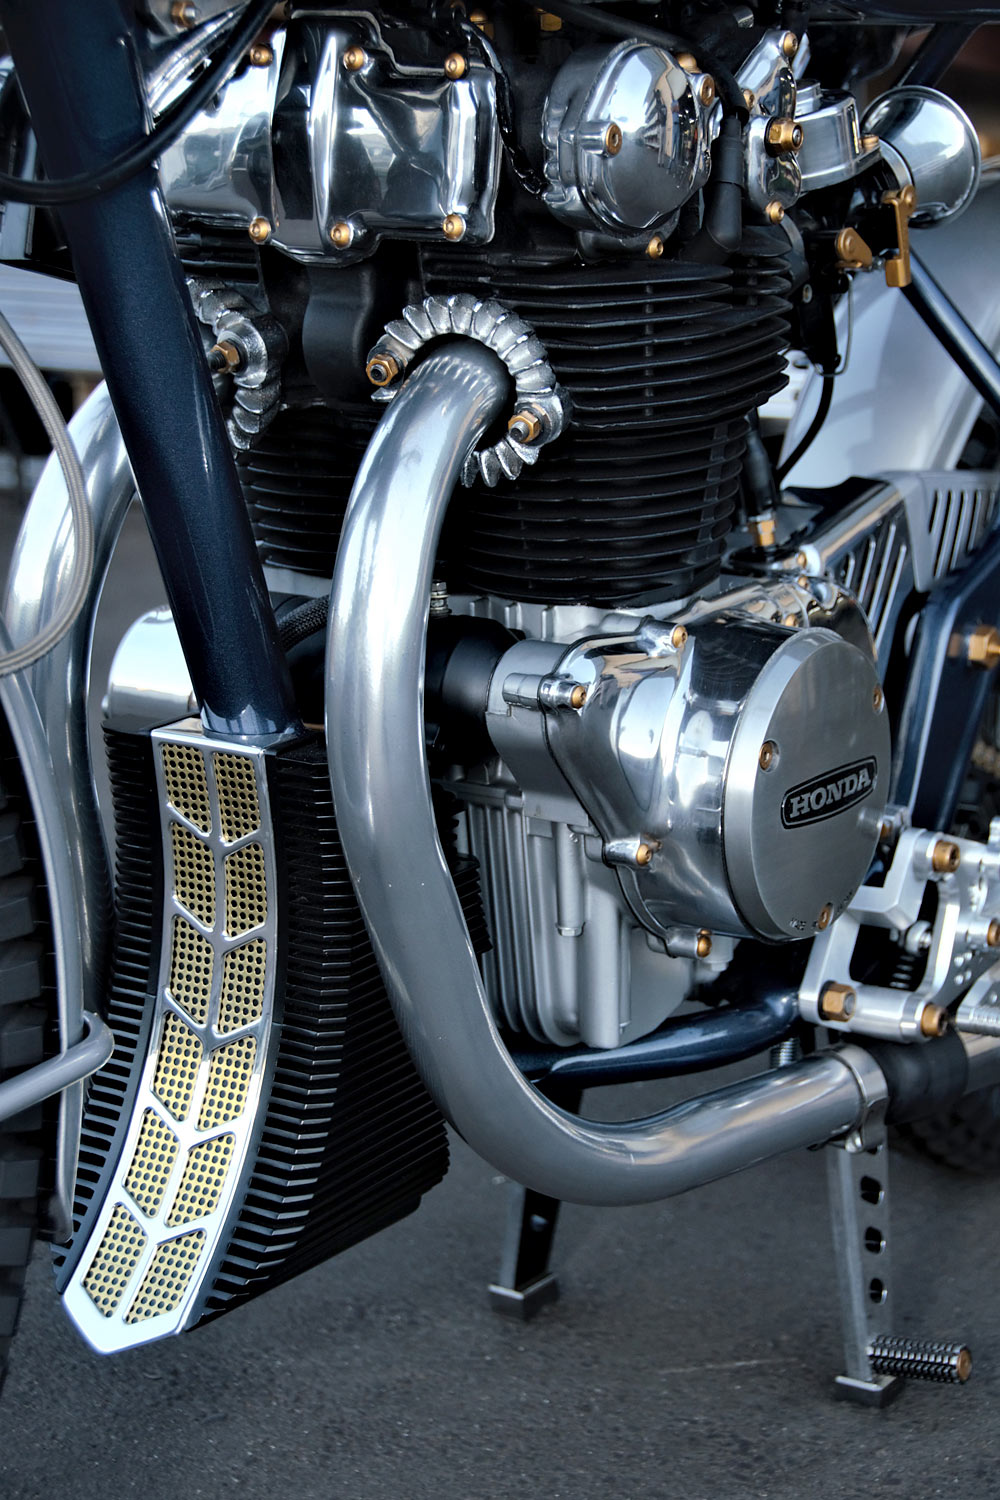 """""""The project's inspiration was taken from the design of the Honda Dream bikes from the 50s and 60s. """"The square headlight bucket housing the speedometer and ..."""